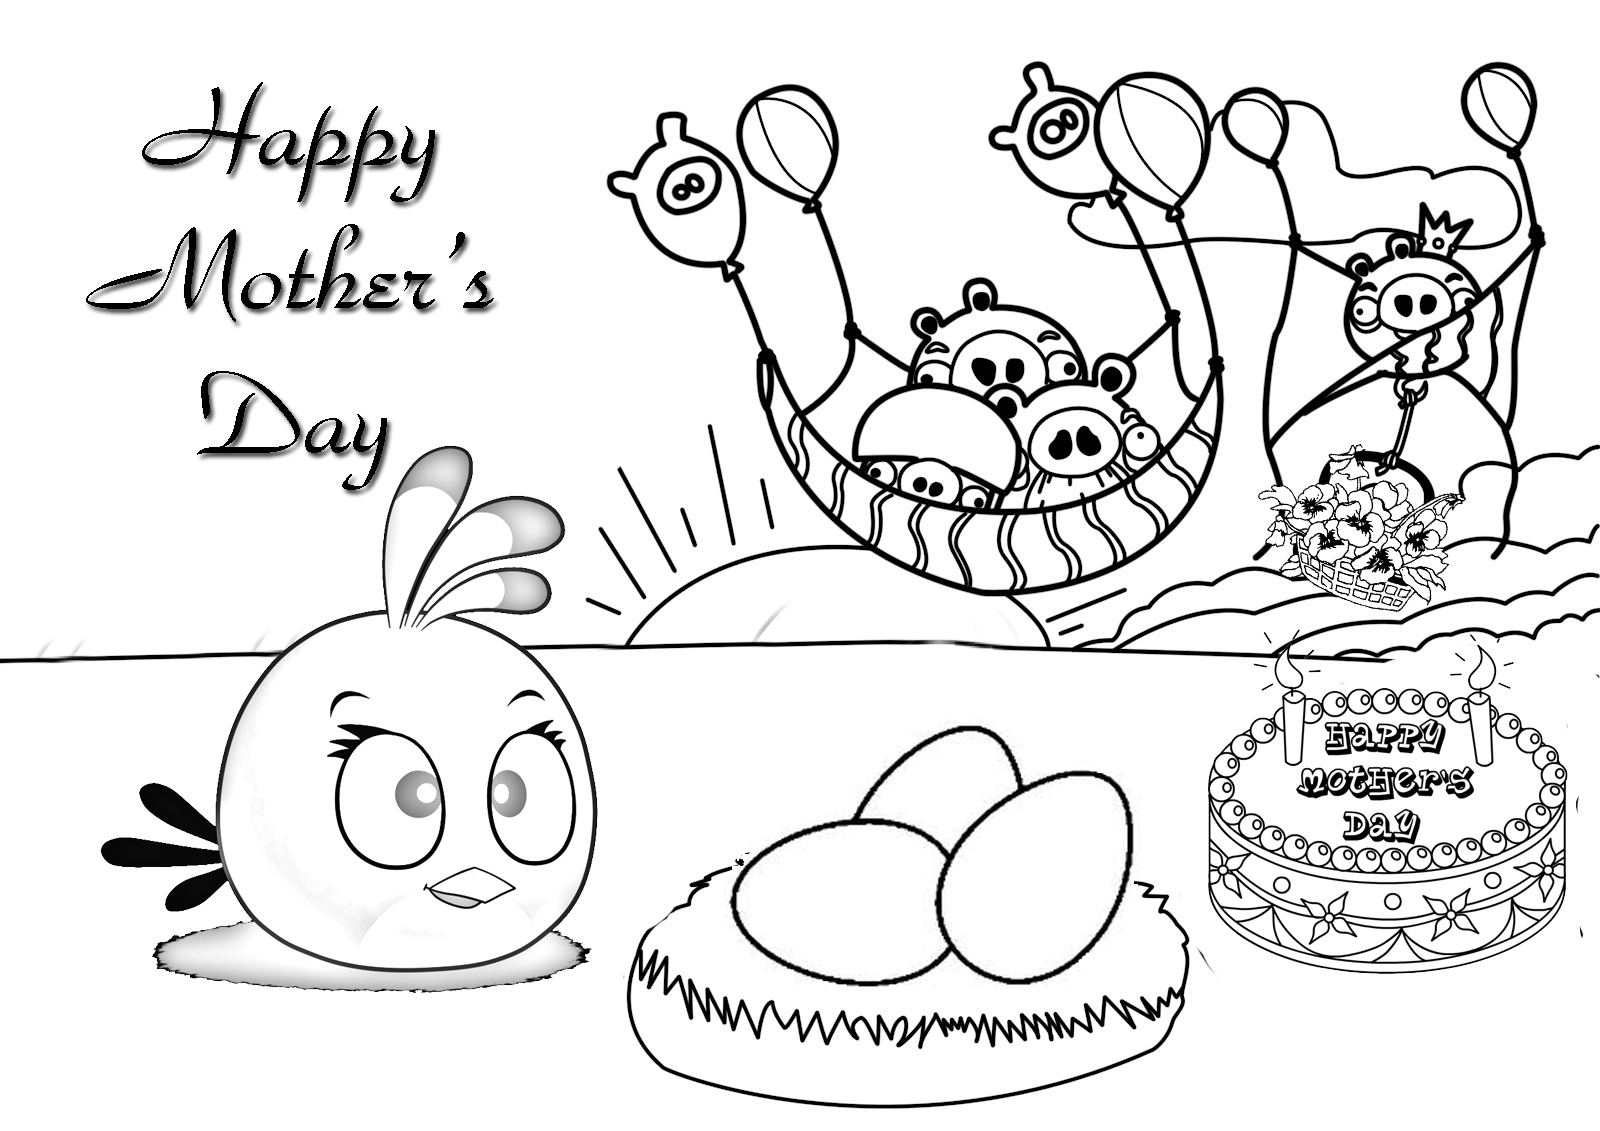 Coloring sheets for mothers day - Free Coloring Pages Mothers Day